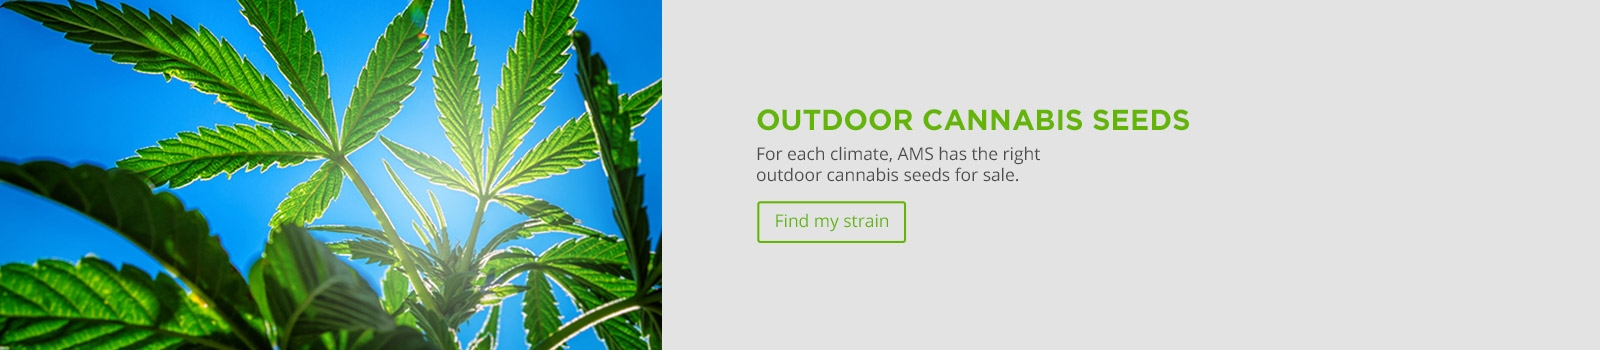 Outdoor Cannabis Seeds